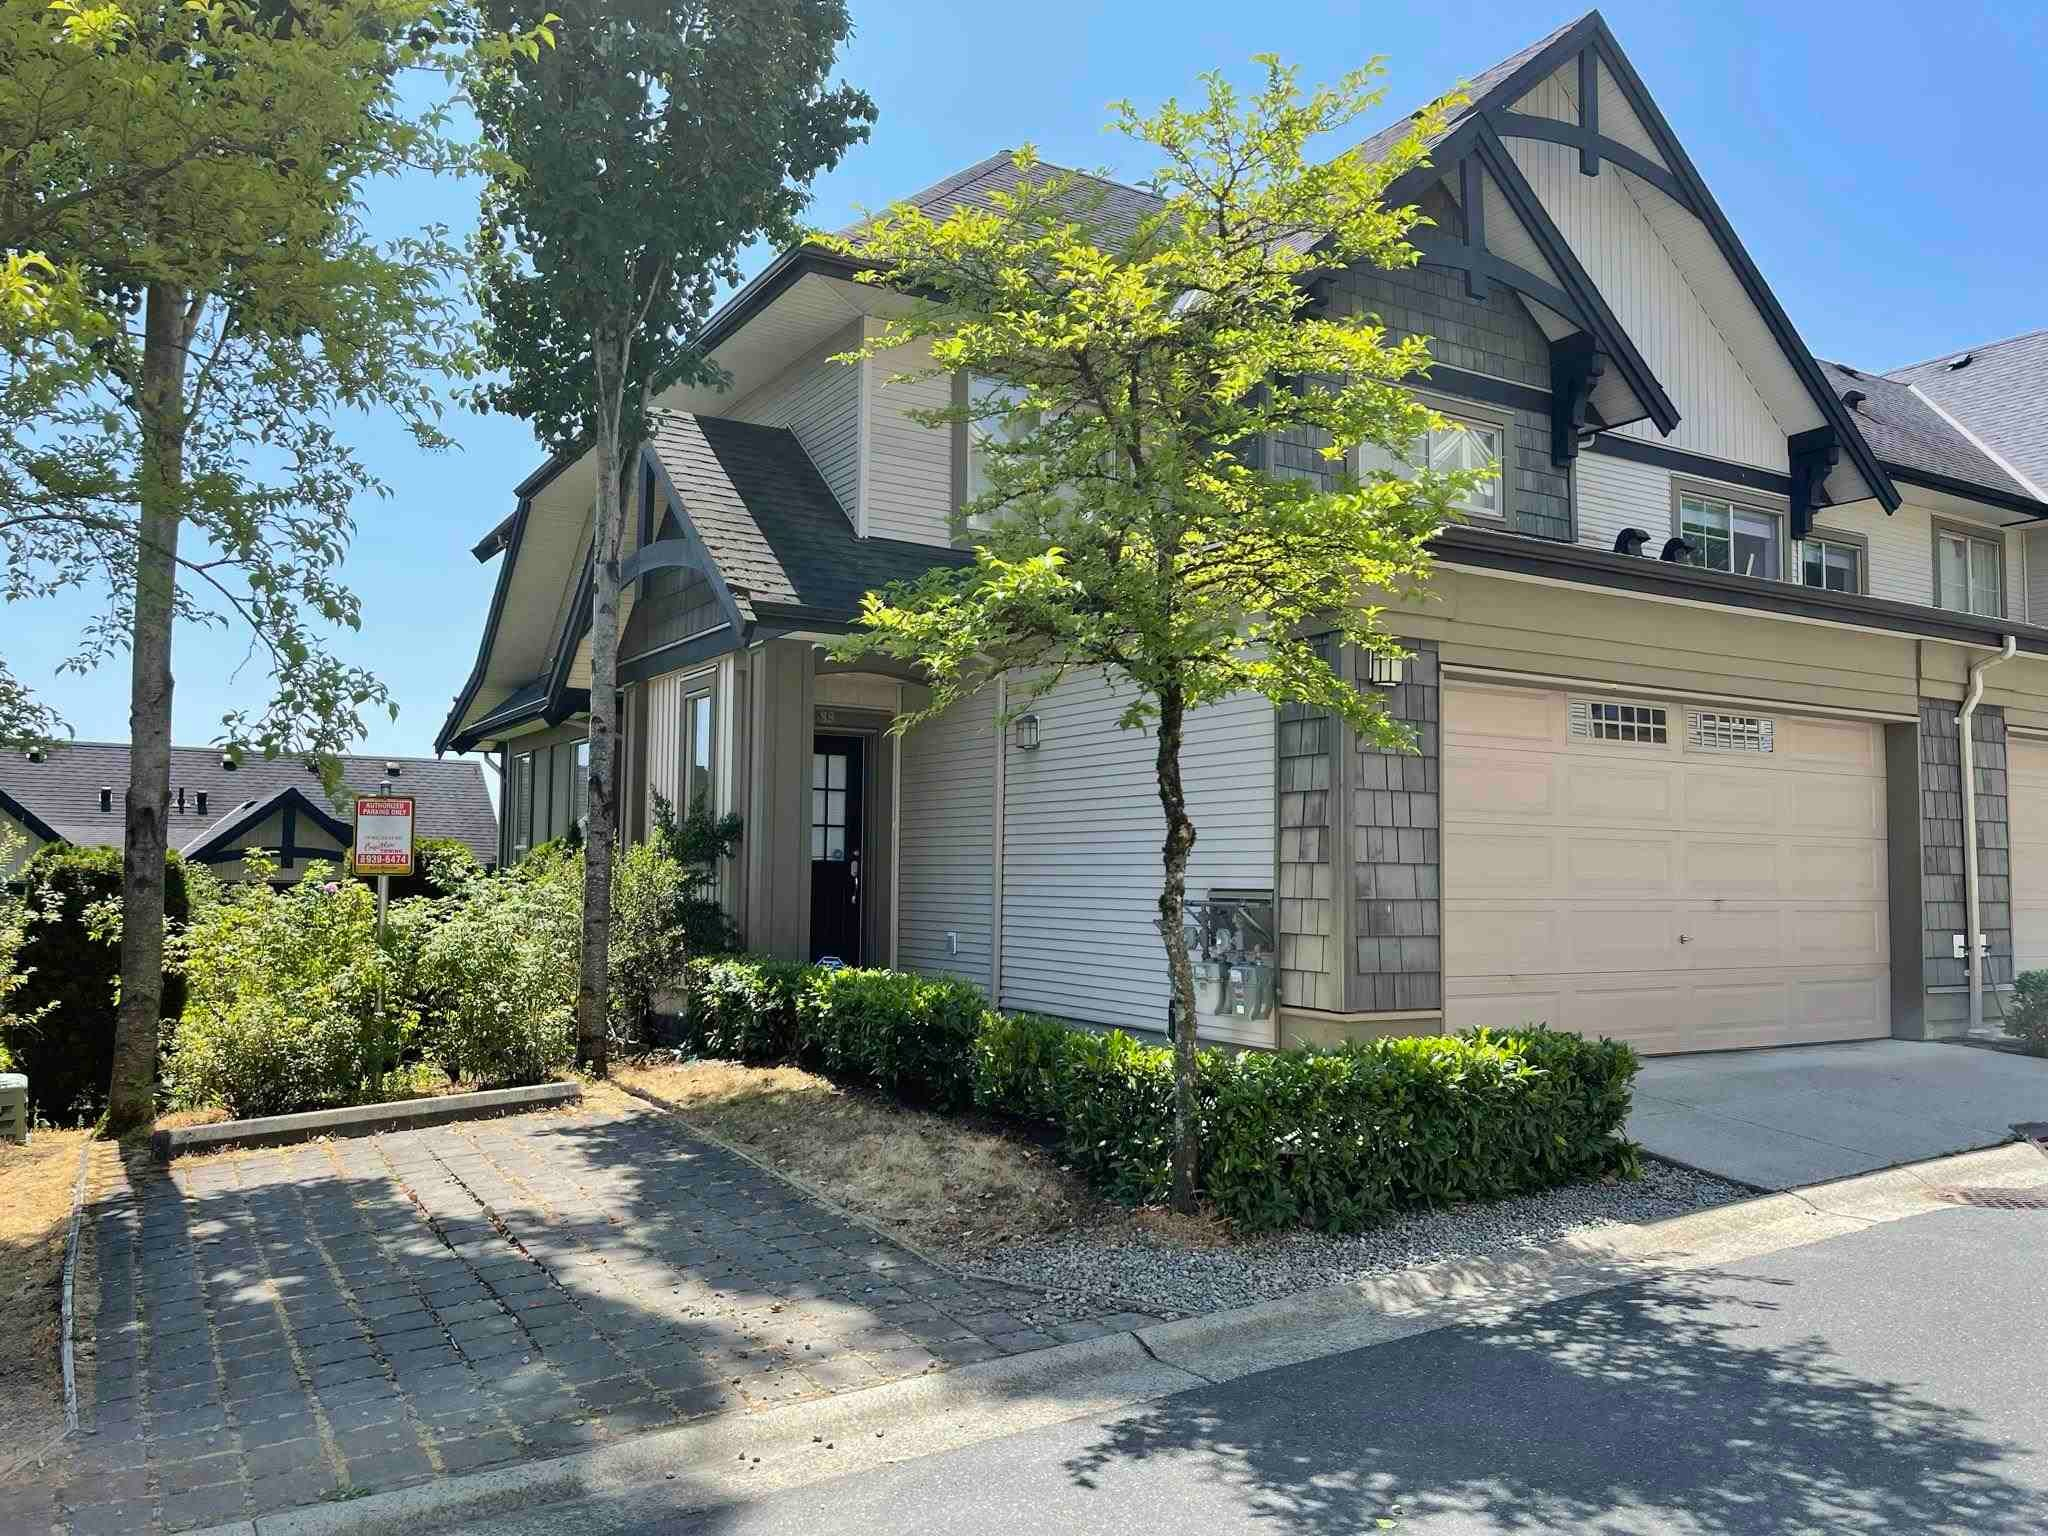 89 1369 PURCELL DRIVE - Westwood Plateau Townhouse for sale, 4 Bedrooms (R2601067) - #1